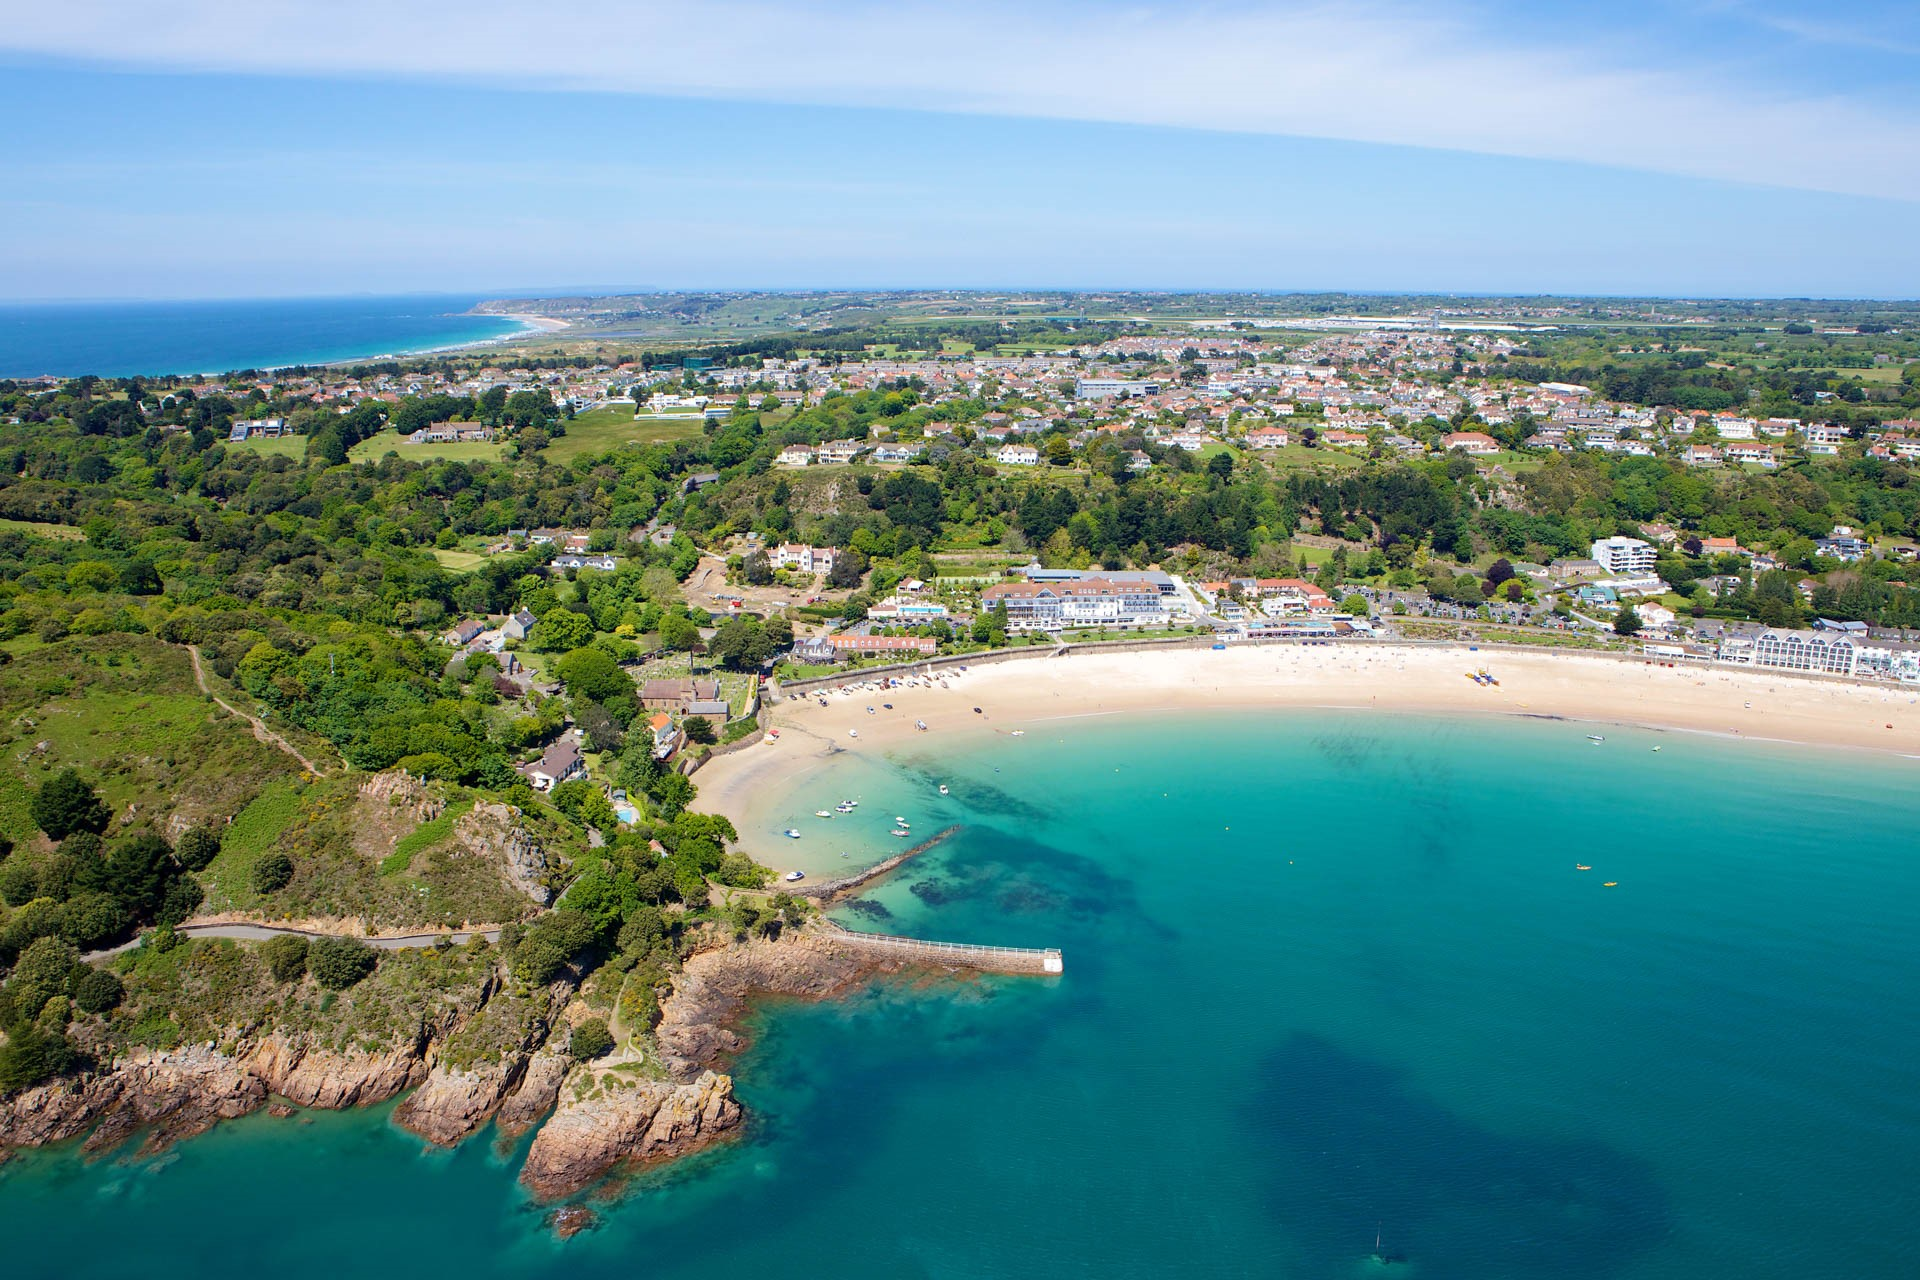 Aerial View of St Brelade's Bay